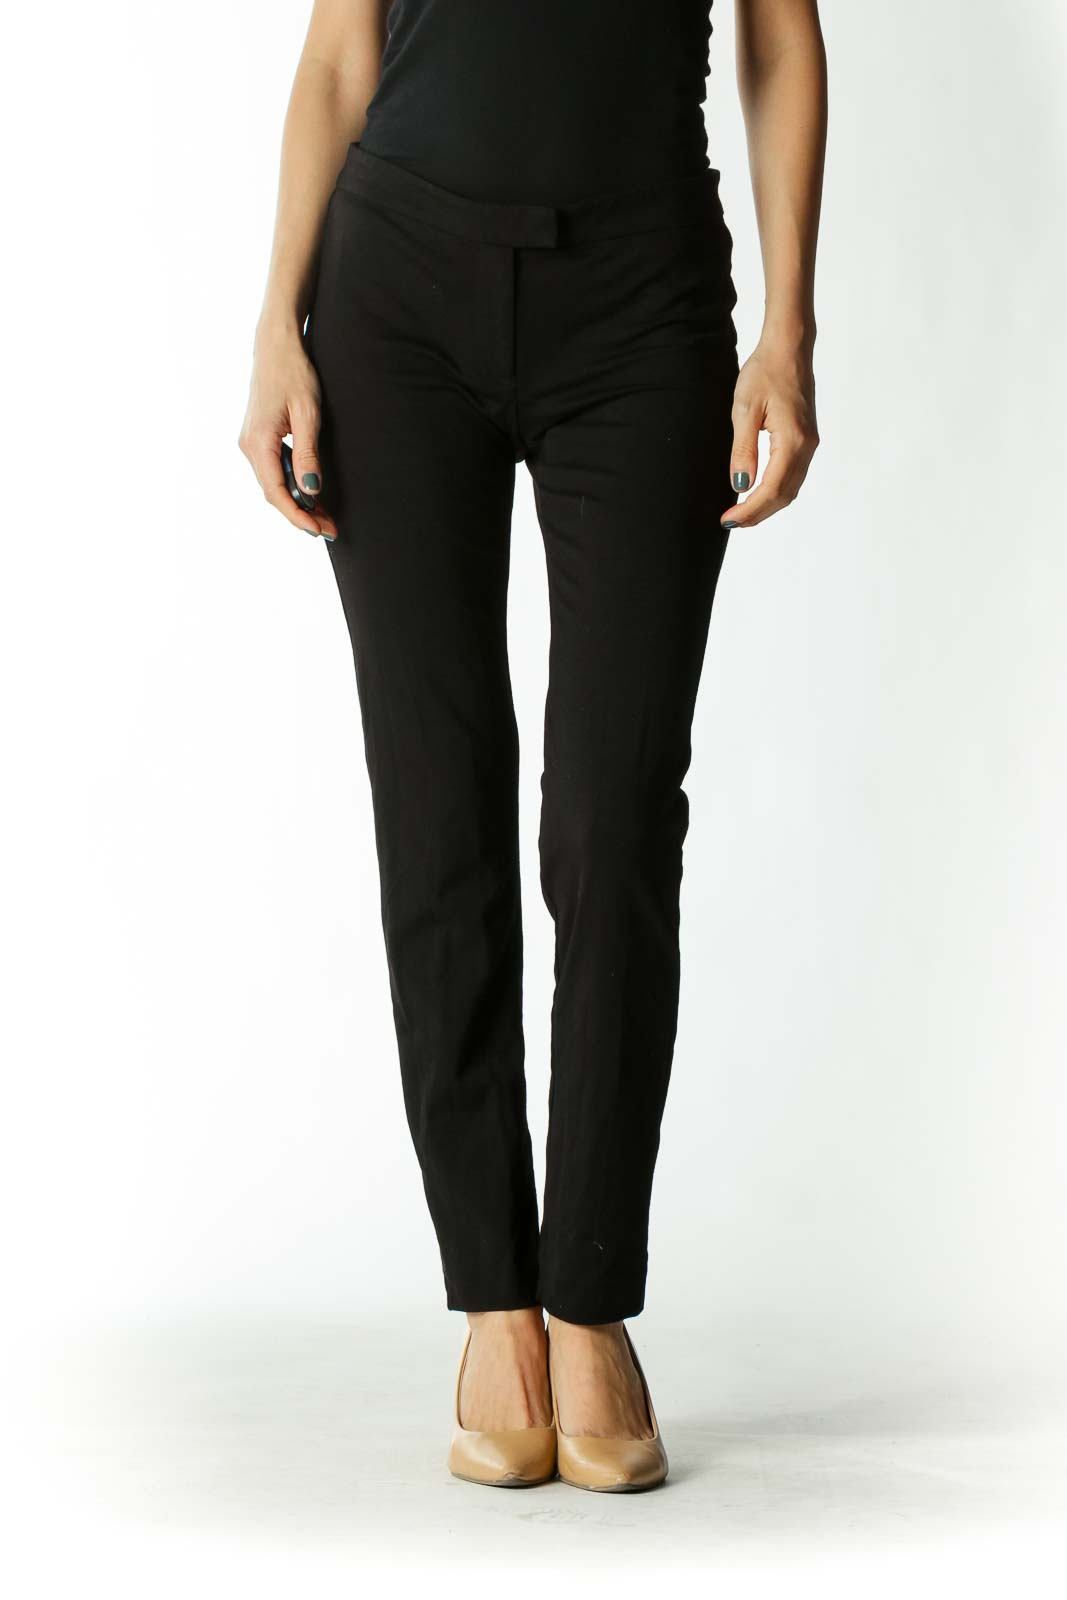 Black Mid-Rise Jeggings with Rear-Pockets